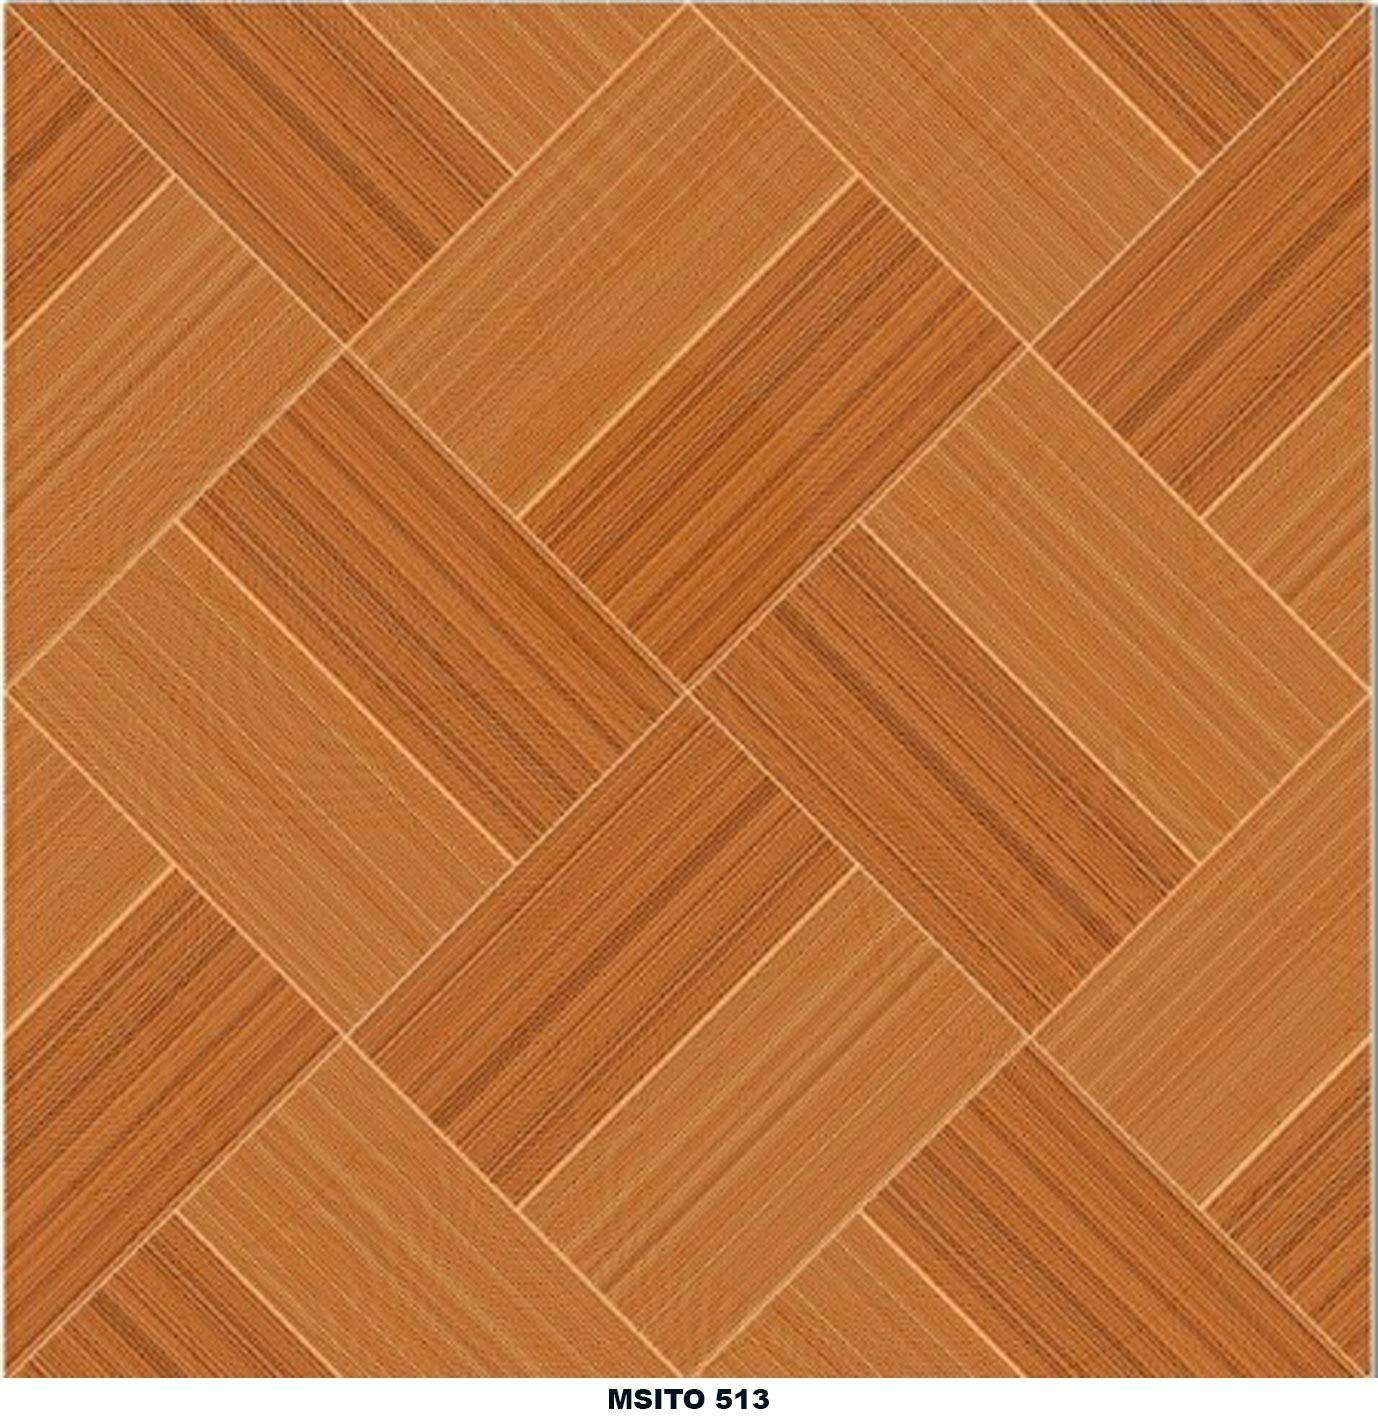 Glazed wooden tiles indoor ceramic flooring tiles marble floor tiles size 40x40cm